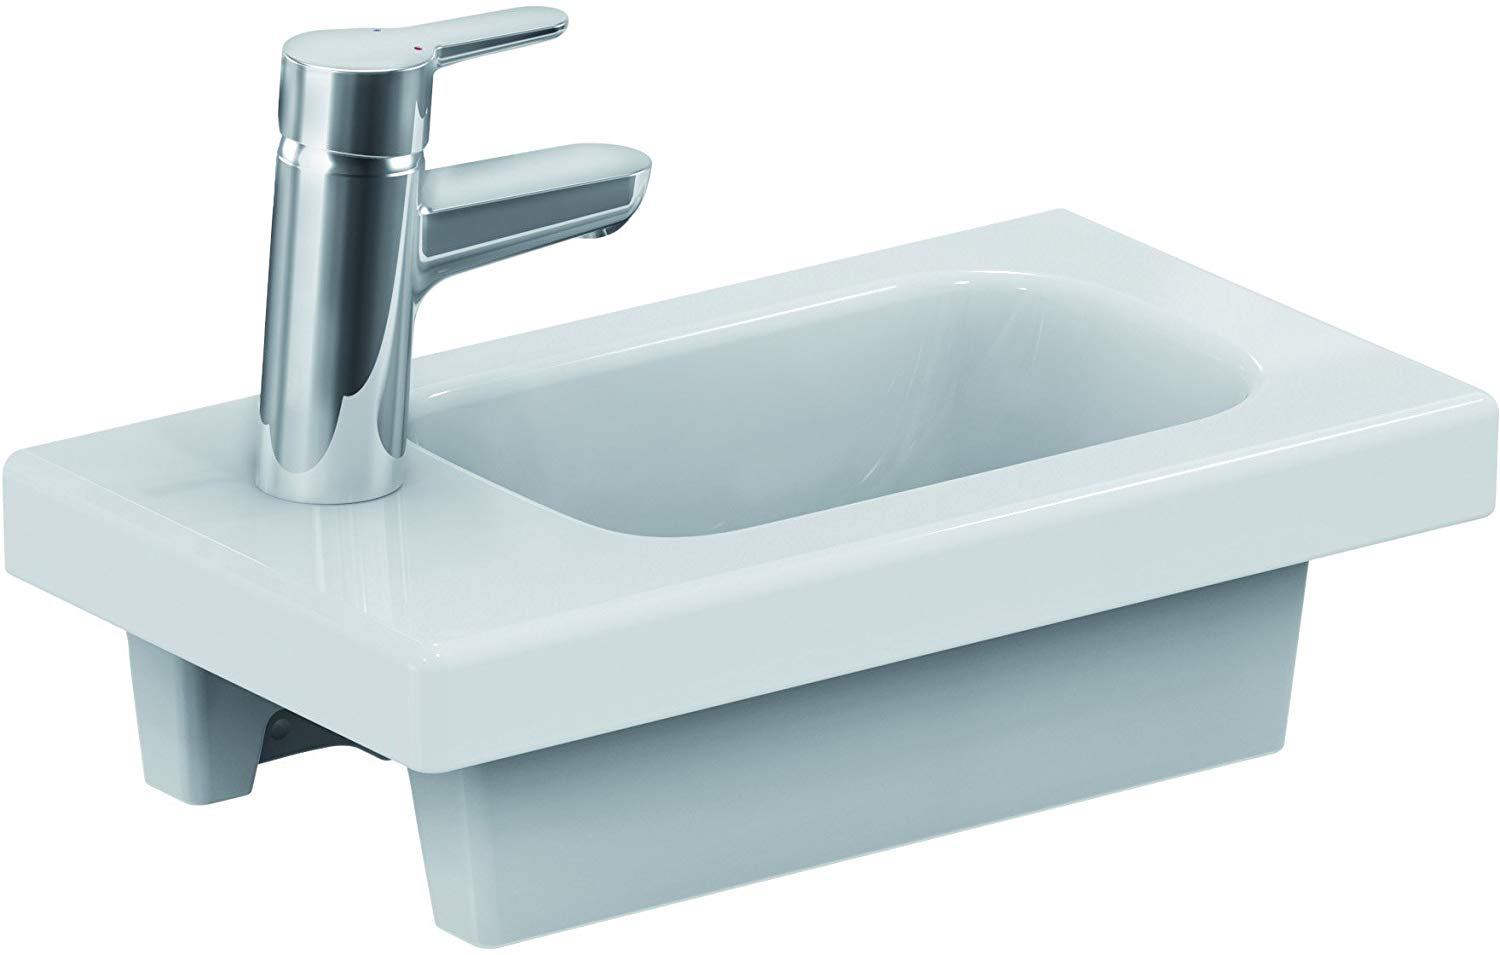 Ideal Standard Connect Blue Details About Ideal Standard E132201 Connect Space Left Washbasin 45 X 25 Cm White